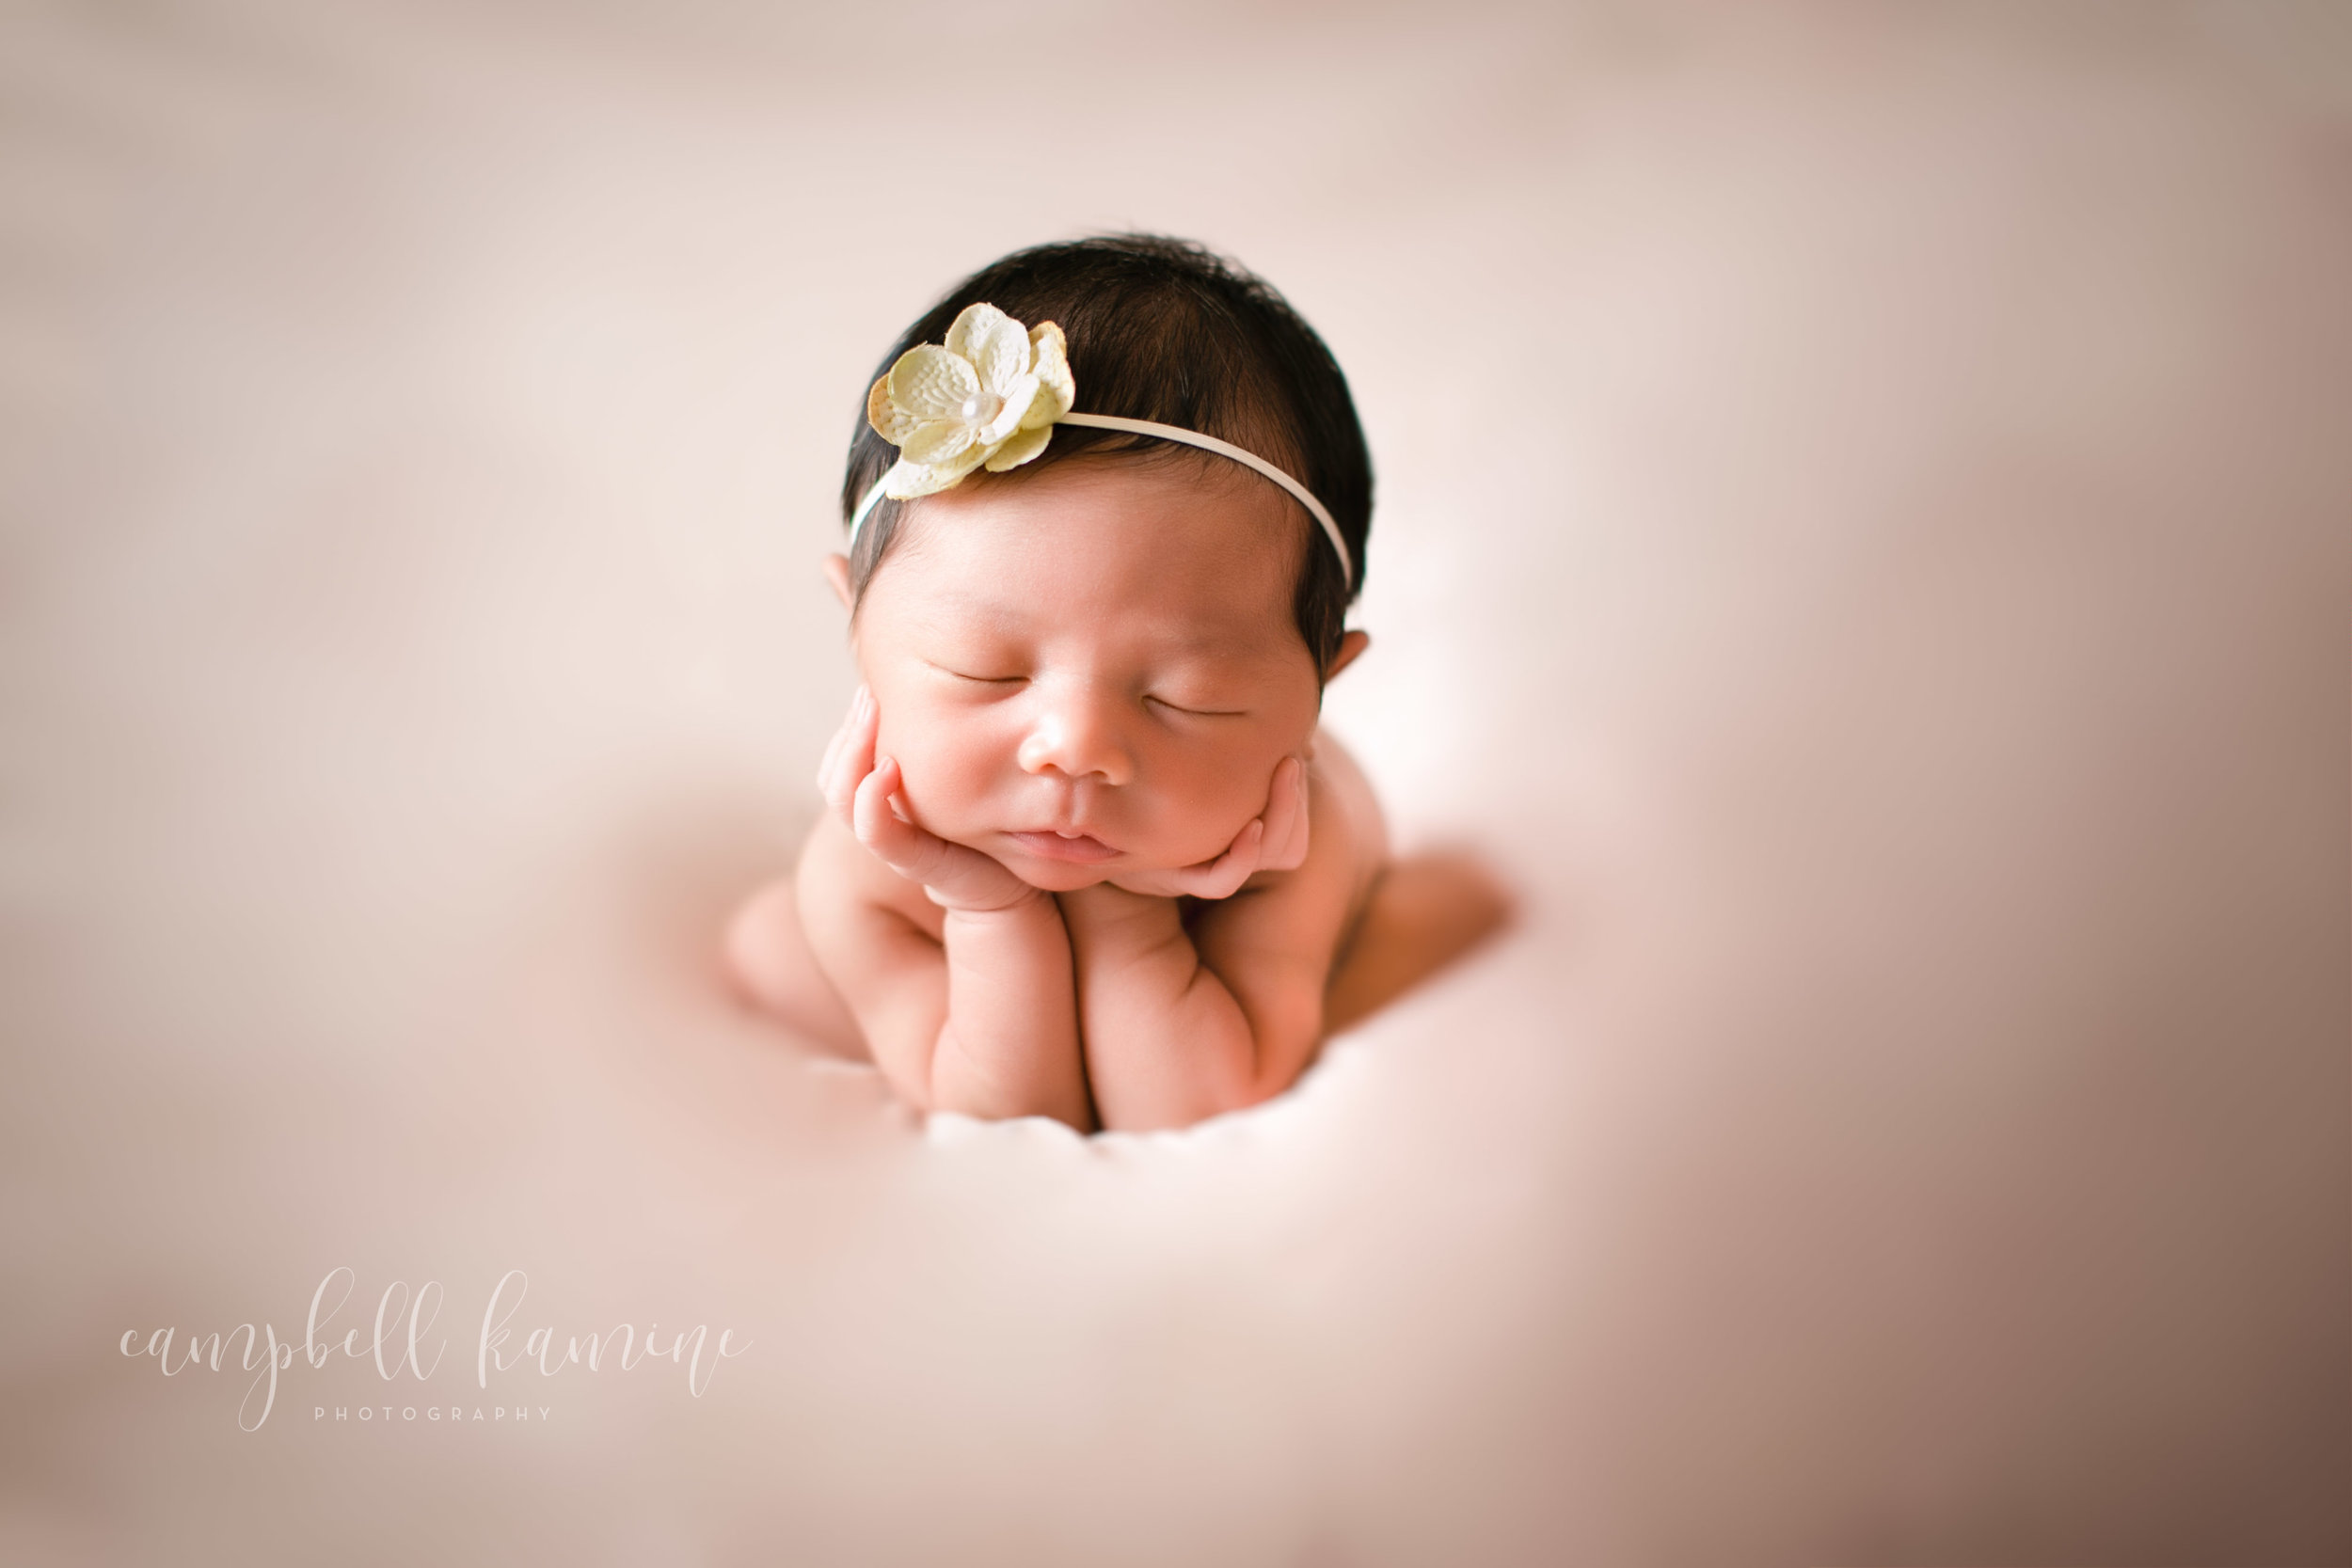 Newborn Session | Baby LILY | Campbell Kamine Photgraphy-1.jpg